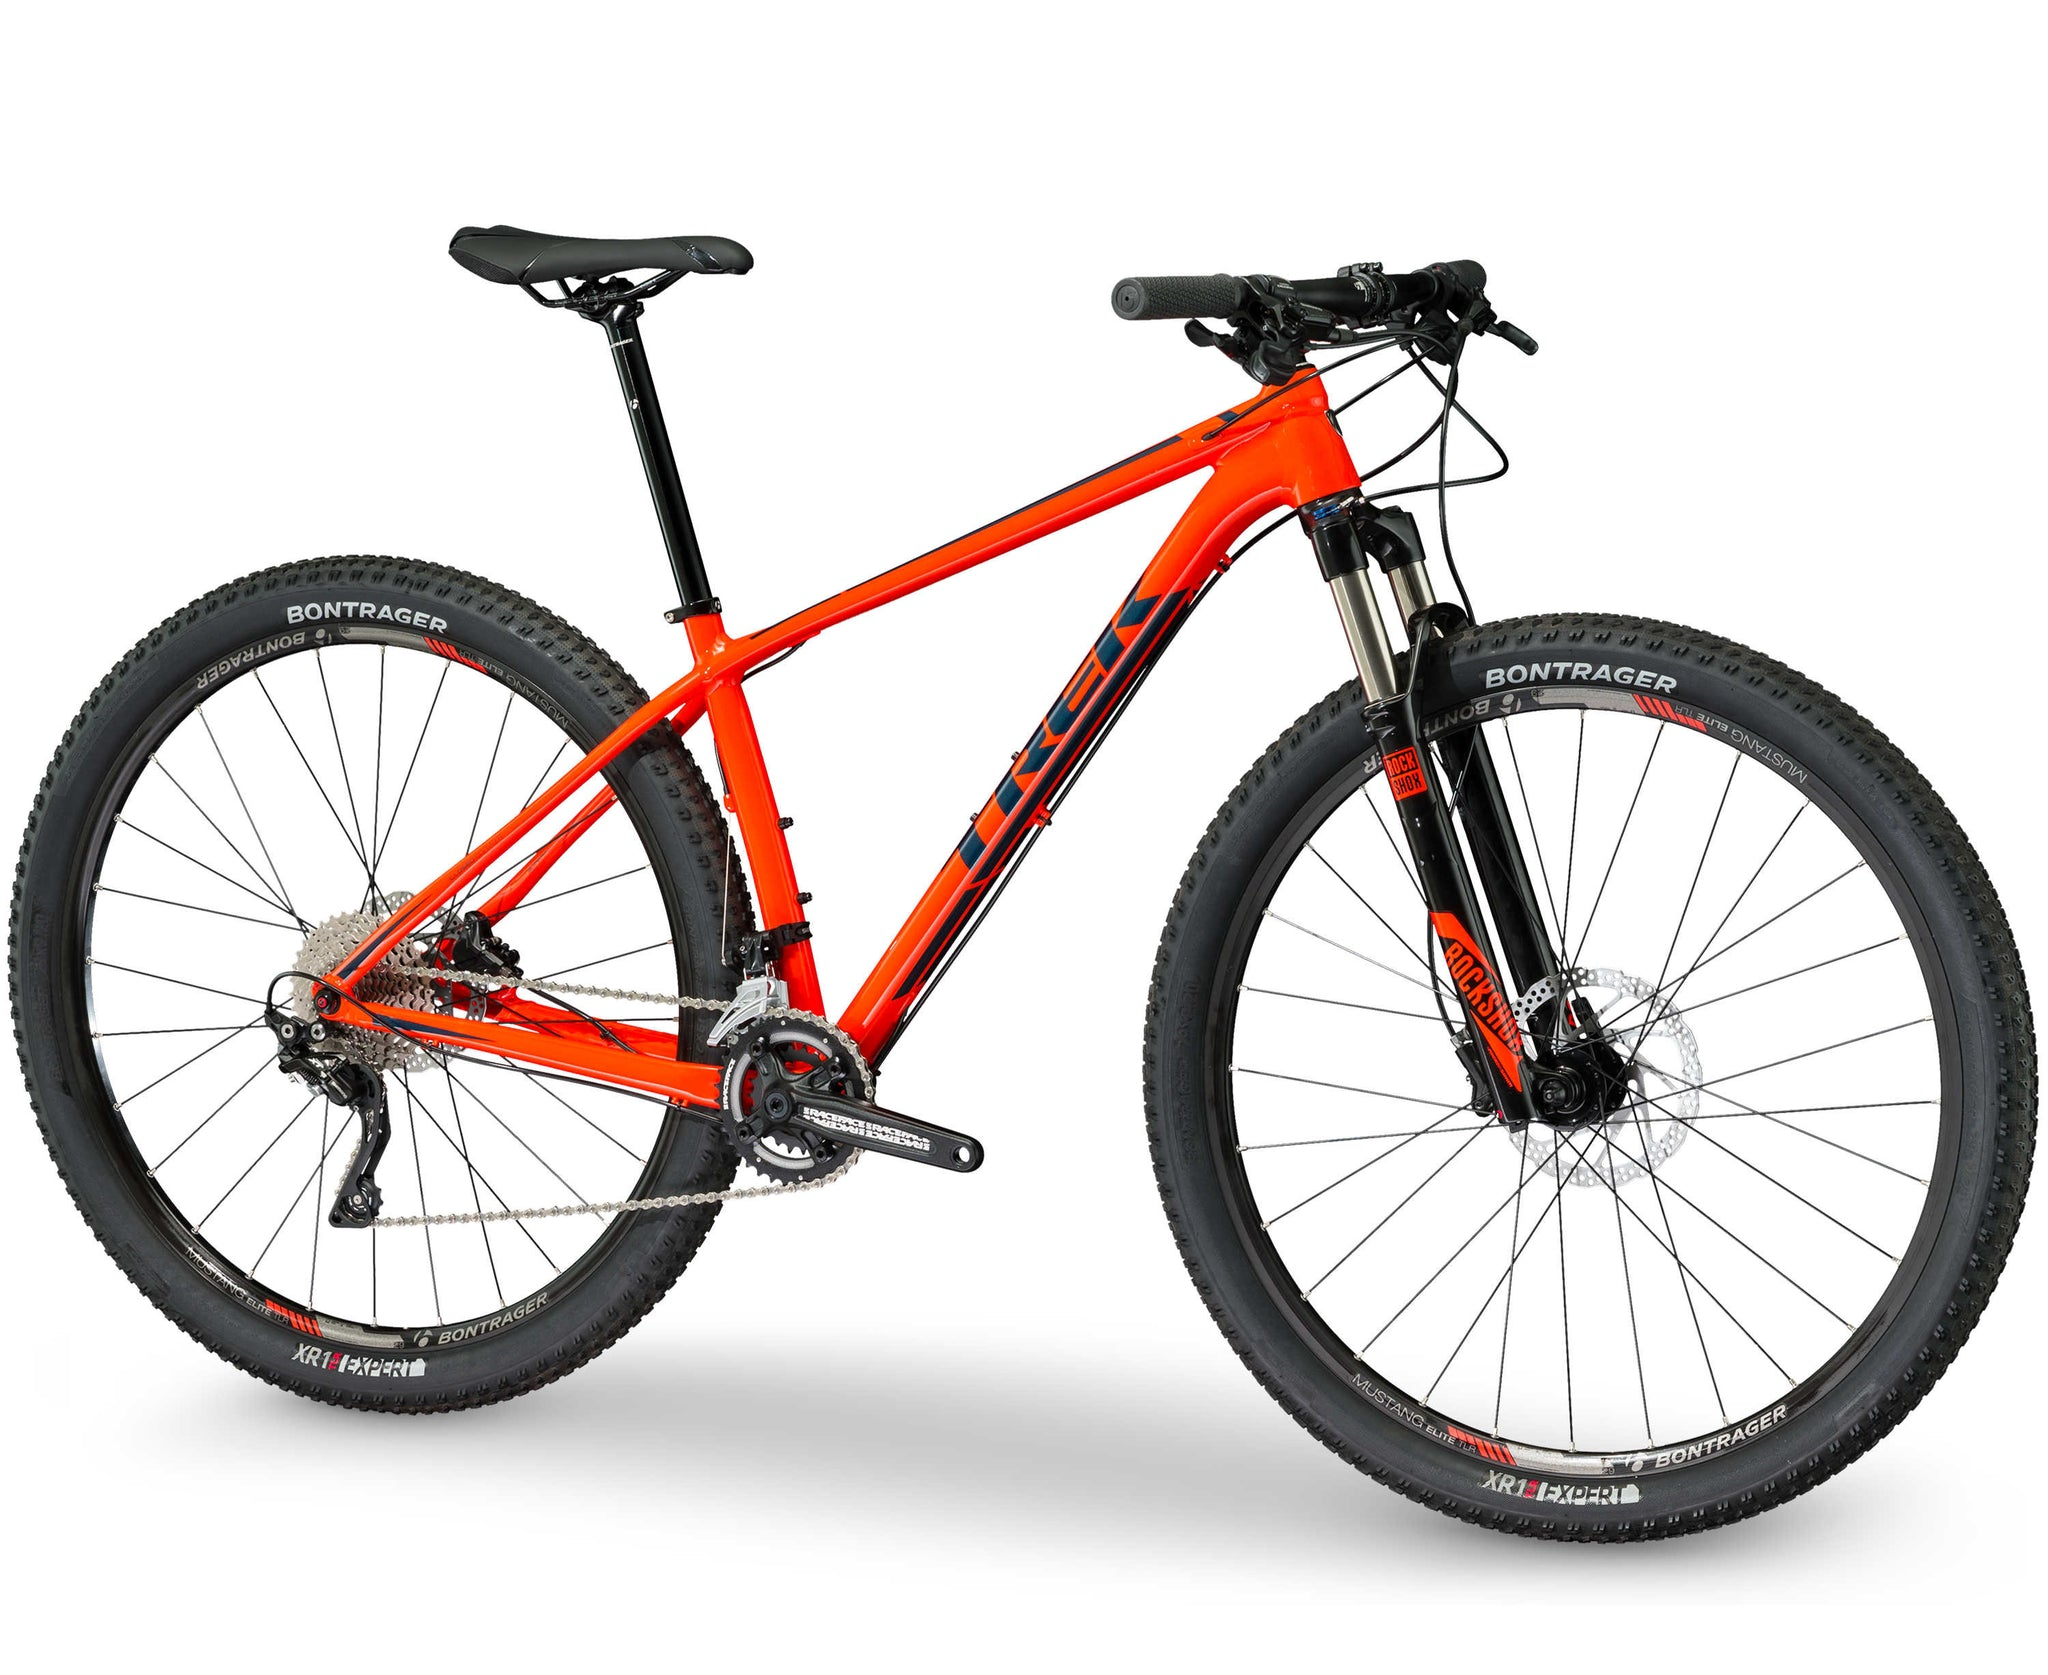 TREK SUPER SALE SUPERFLY 5 29ER ORANGE BLUE BICYCLE